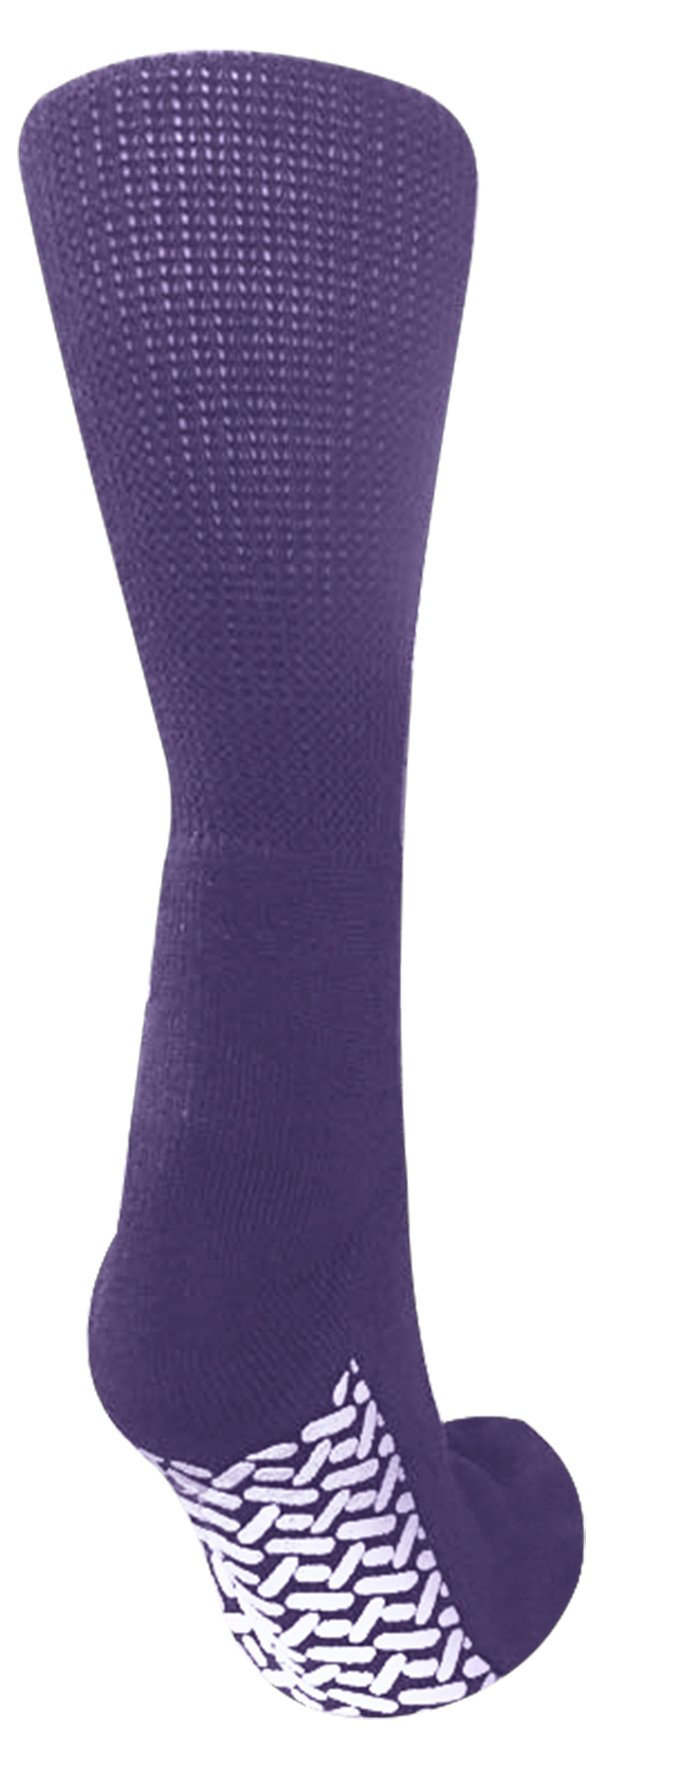 Pack of 3 Personal Touch Women's Comfortable Diabetic Slipper Socks Crew Style (Lilac, 9-11)